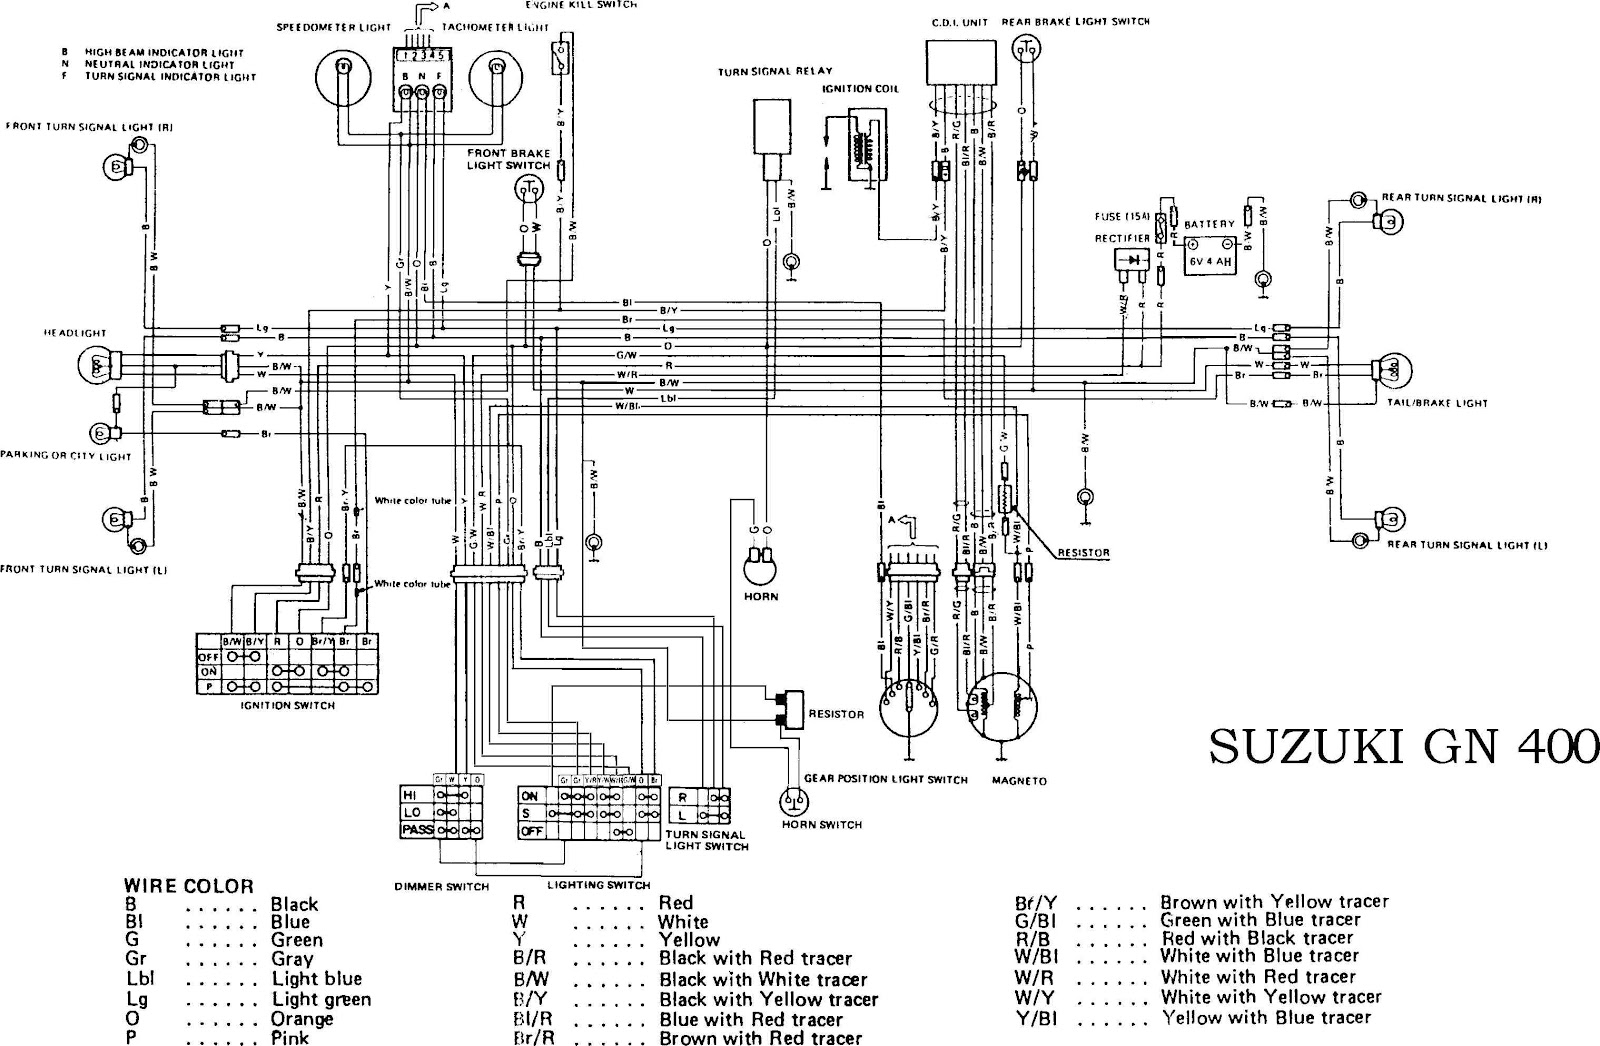 94 gsxr wiring diagram schematic diagram 91 Suzuki Wire Diagram wiring diagram for gsxr 600 schematic diagram wiring diagram for 1998 gsxr 600 2005 gsxr 1000